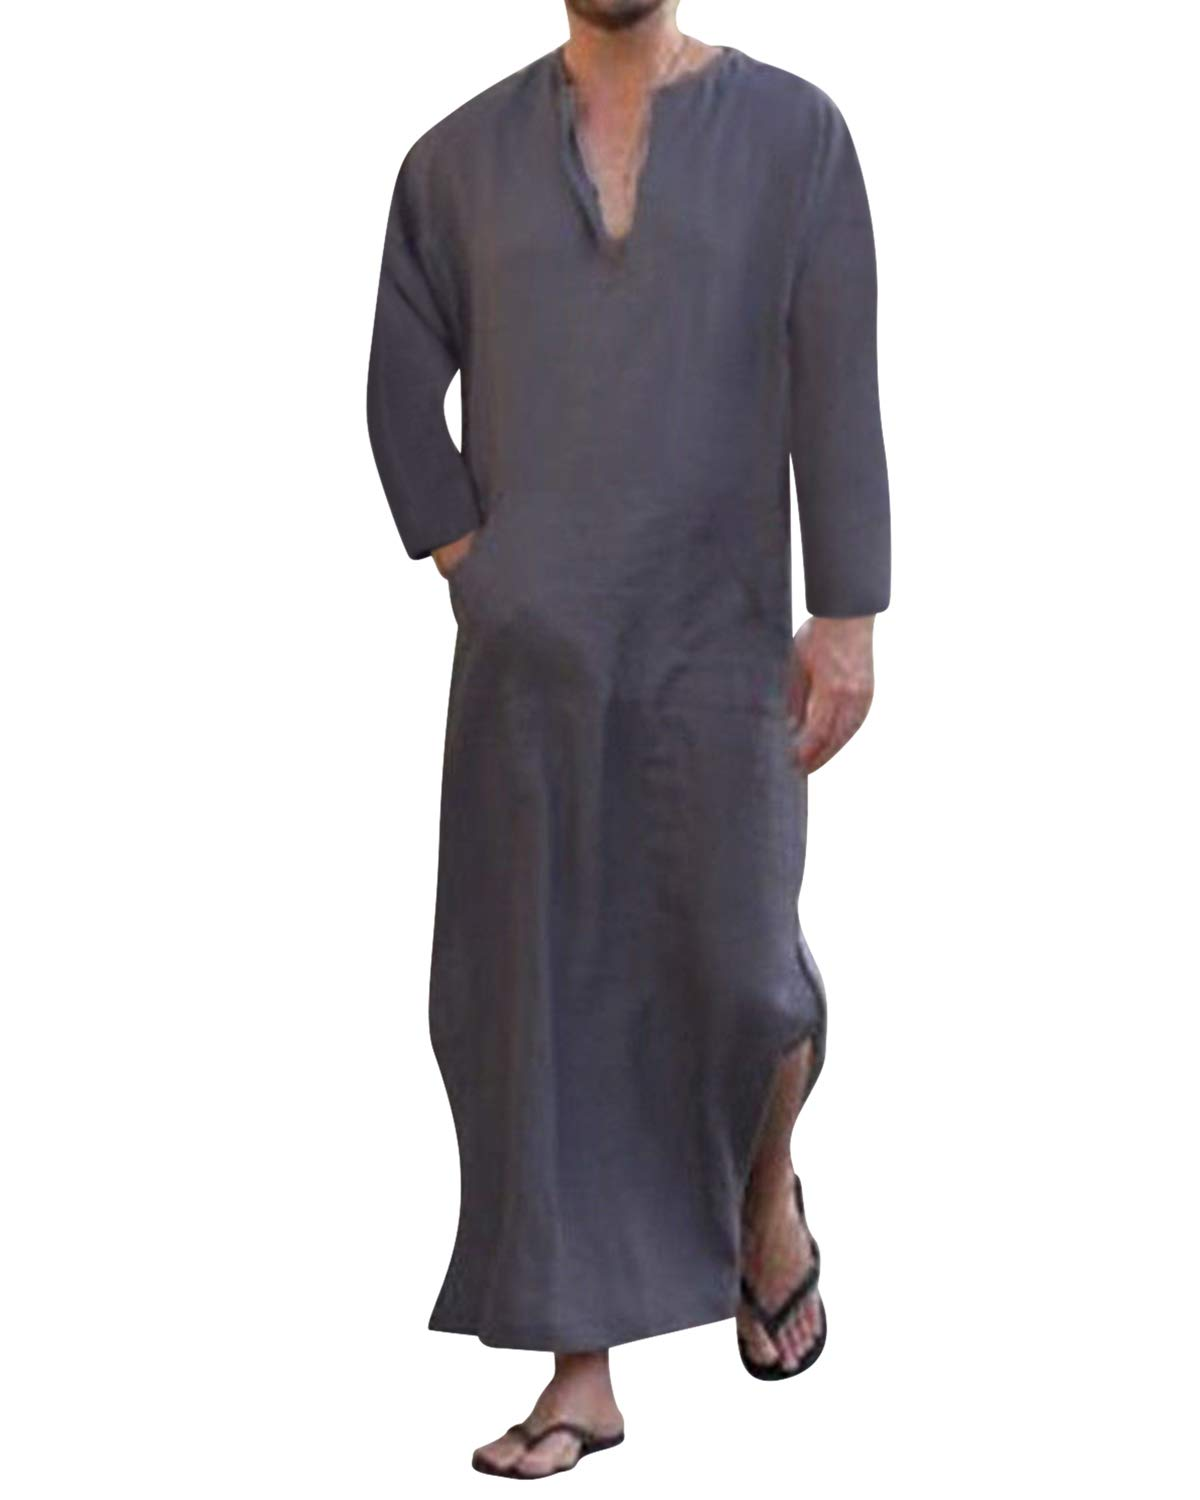 Jacansi Men's Solid Color Oversized Middle Eastern Dubai Indian Arab Thobes Purple #1 XL